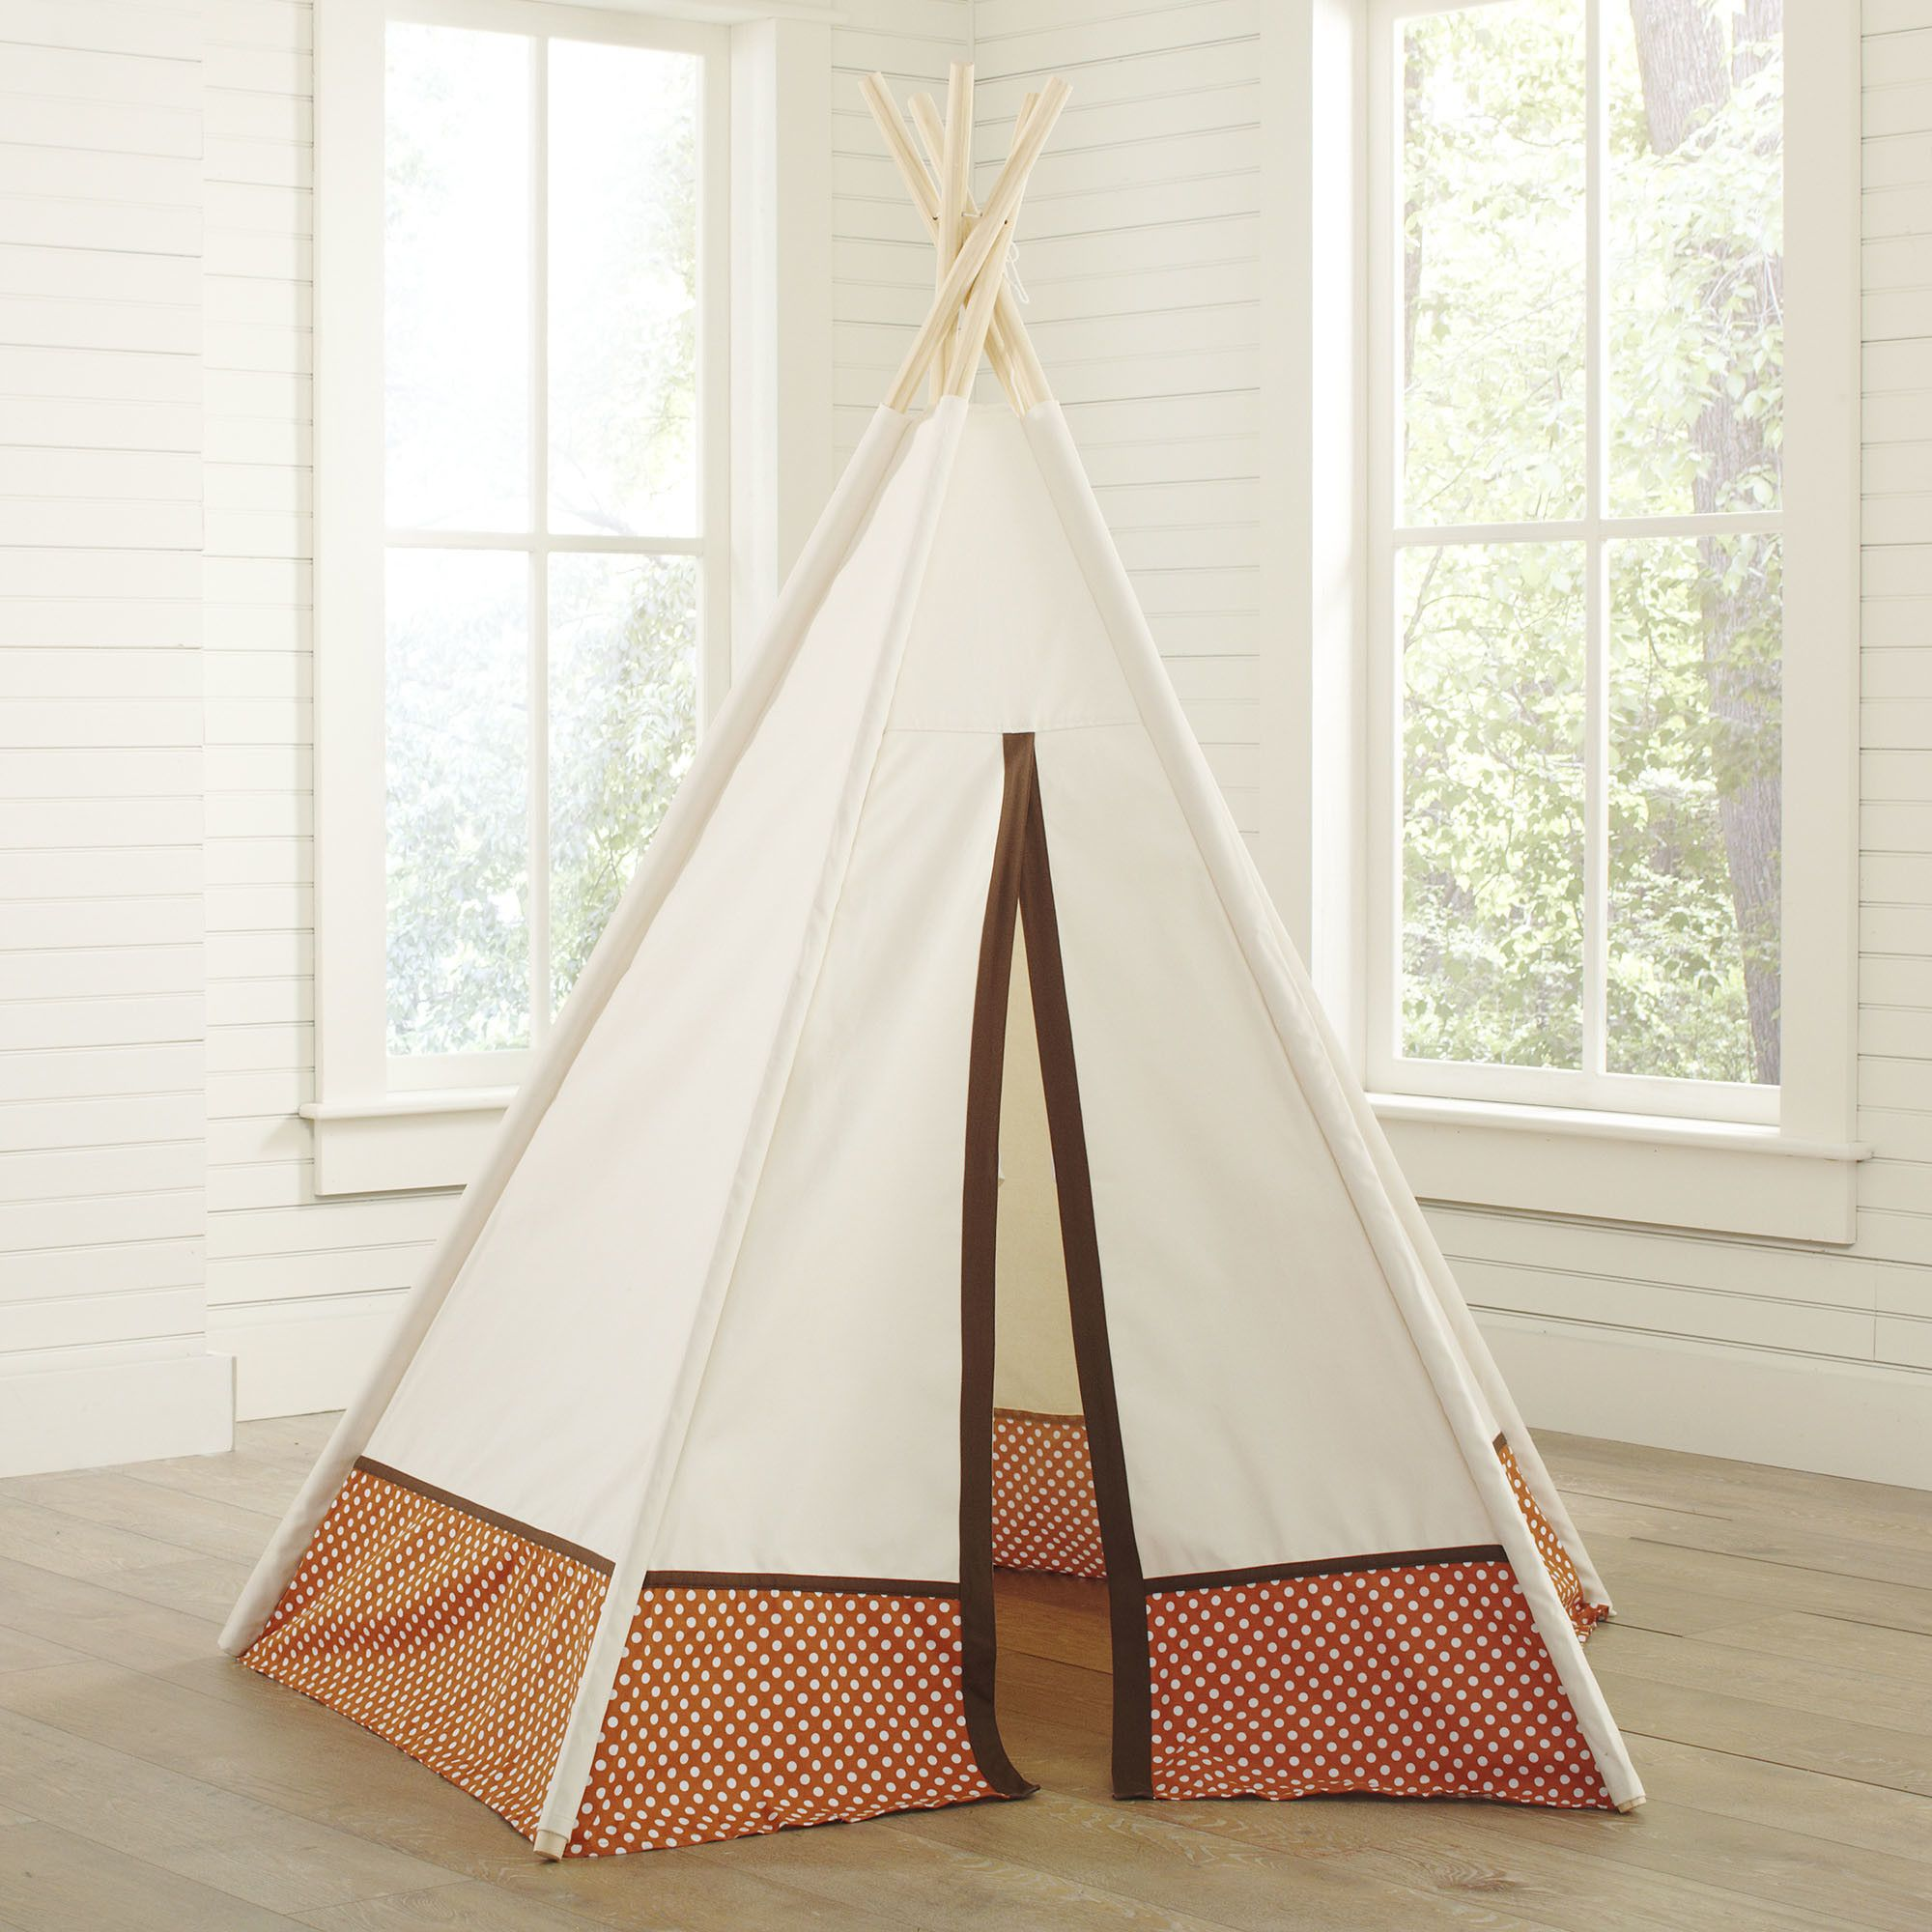 Nomad Great Plains Teepee - Full Of Whimsy And Charm,